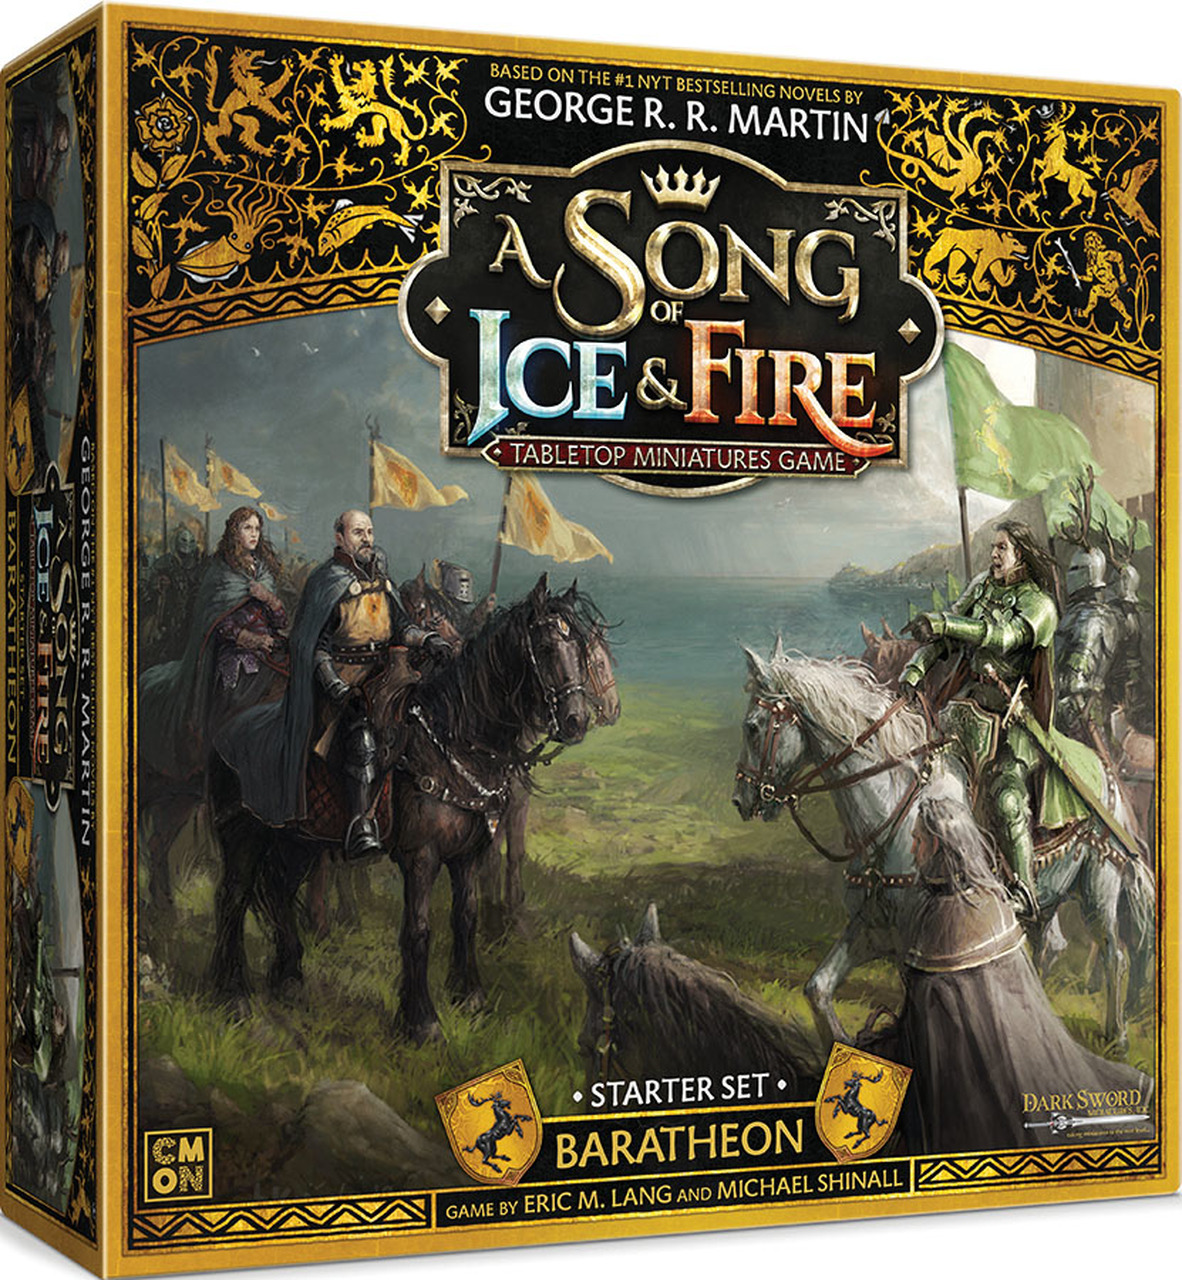 Baratheon Starter Set: A Song Of Ice and Fire Core Box - 20% discount